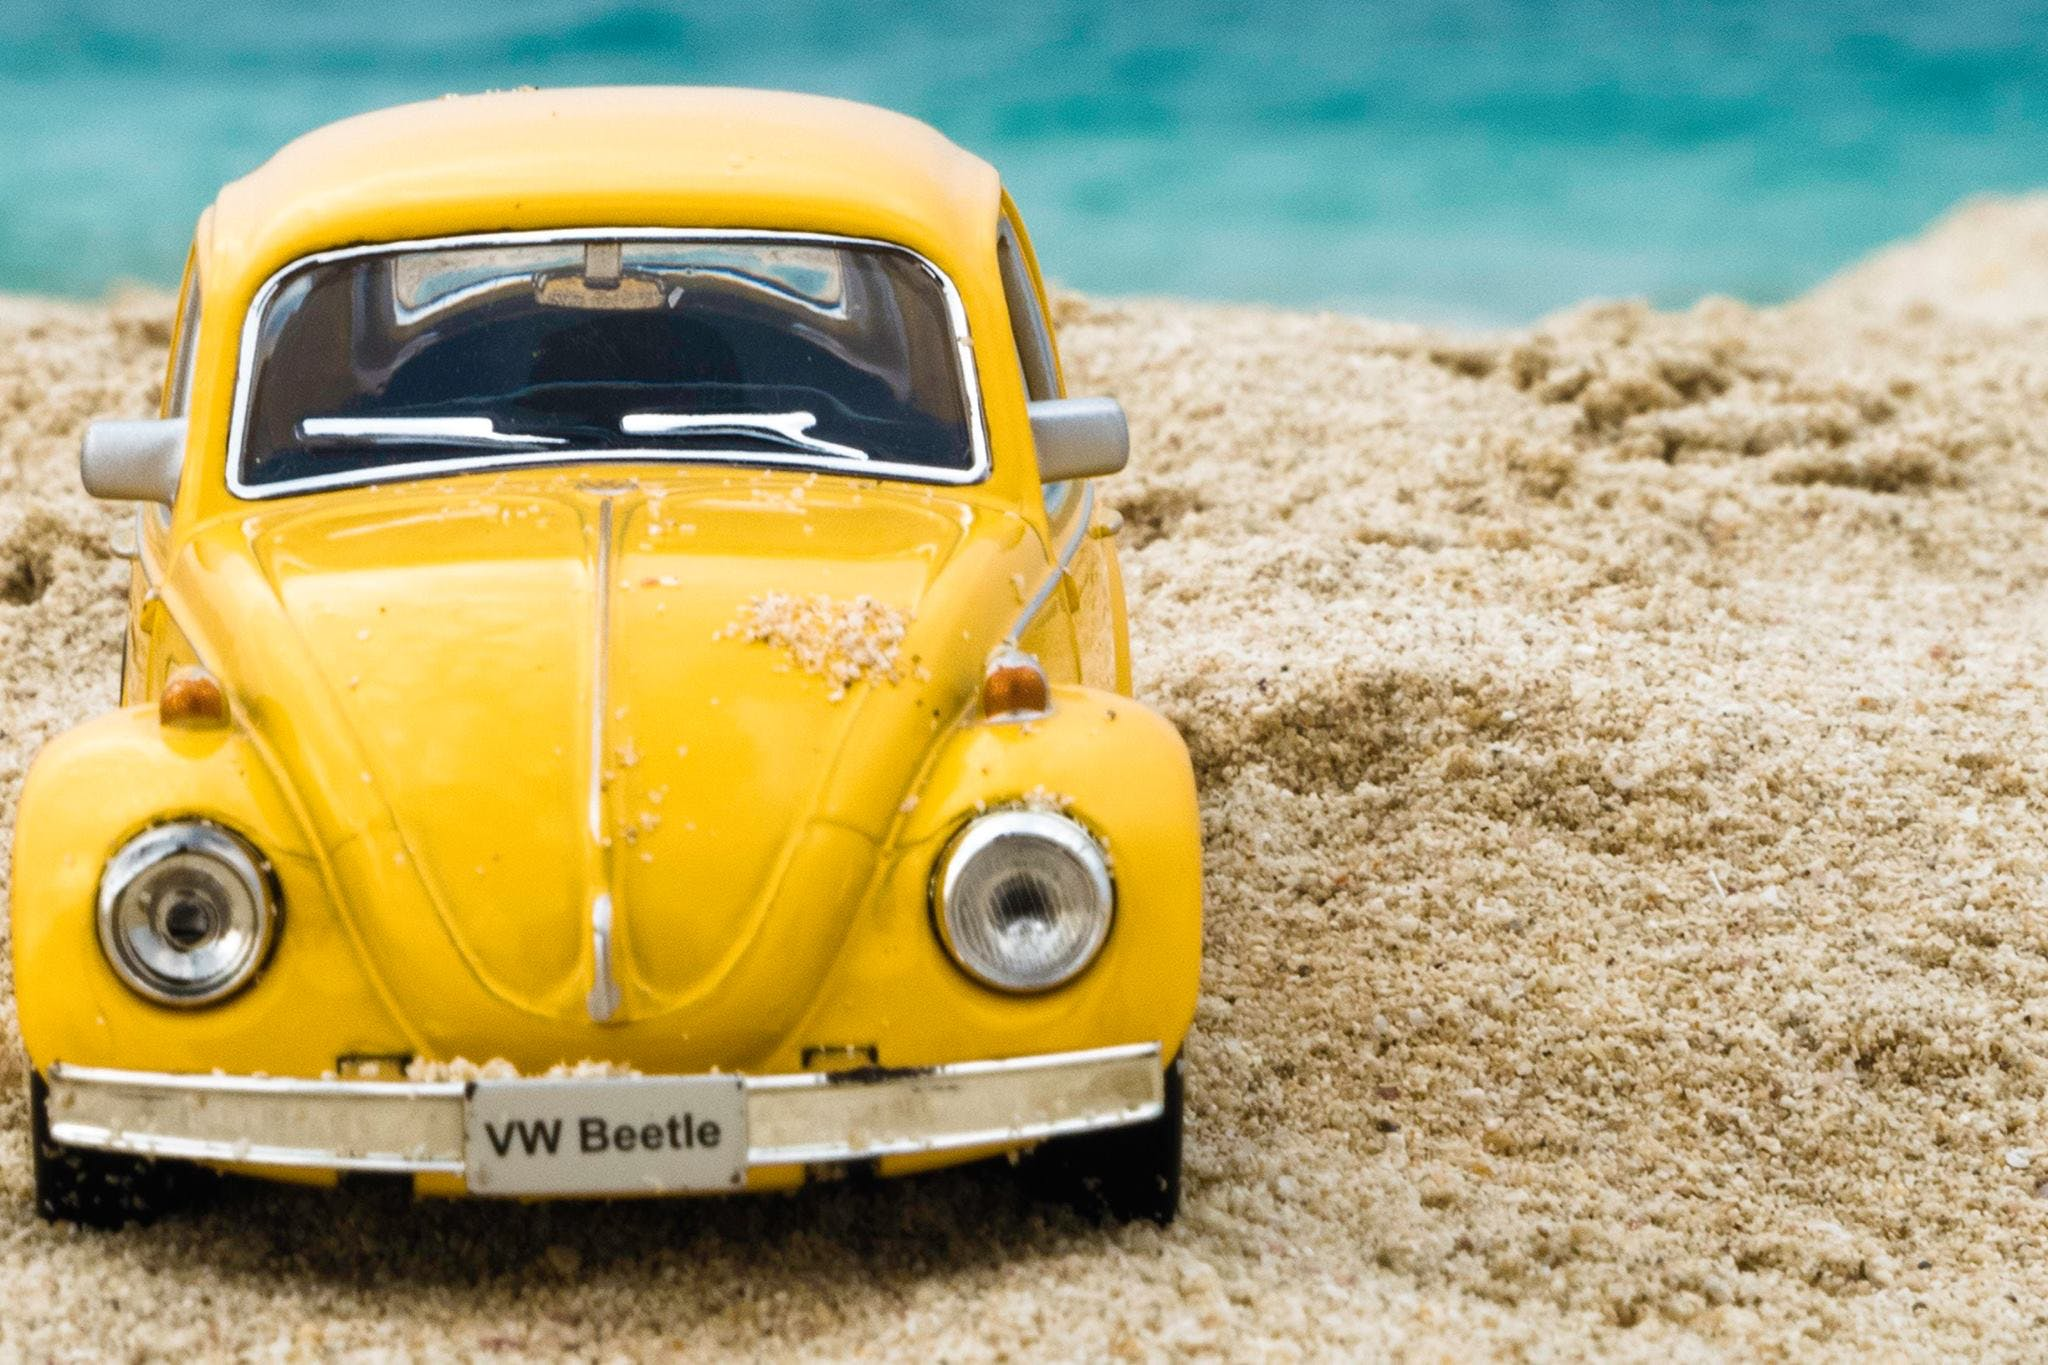 Free stock photo of toy, beetle, miniature, baby toy